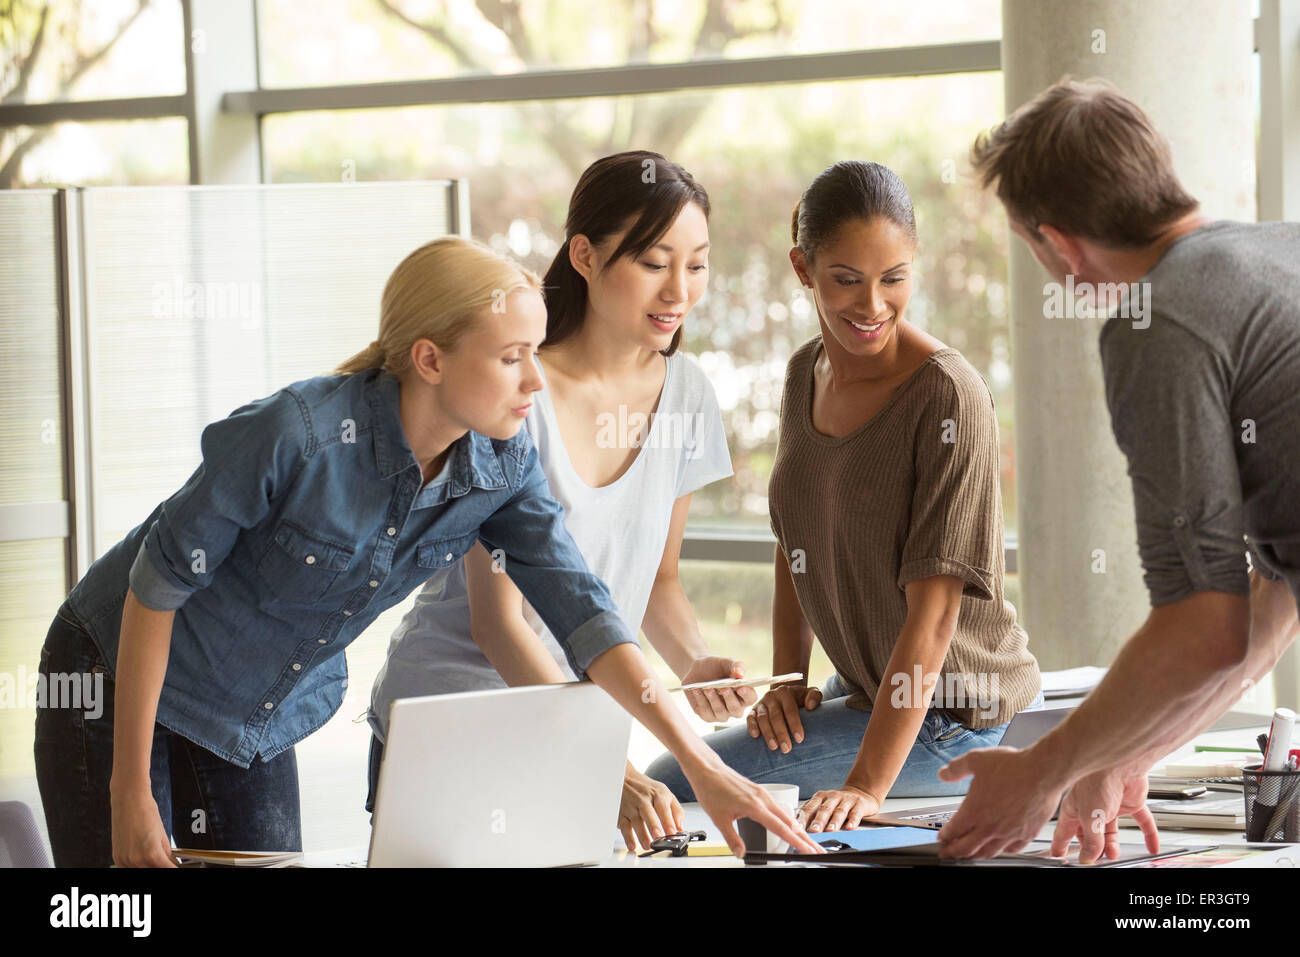 Project team working closely on assignment - Stock Image